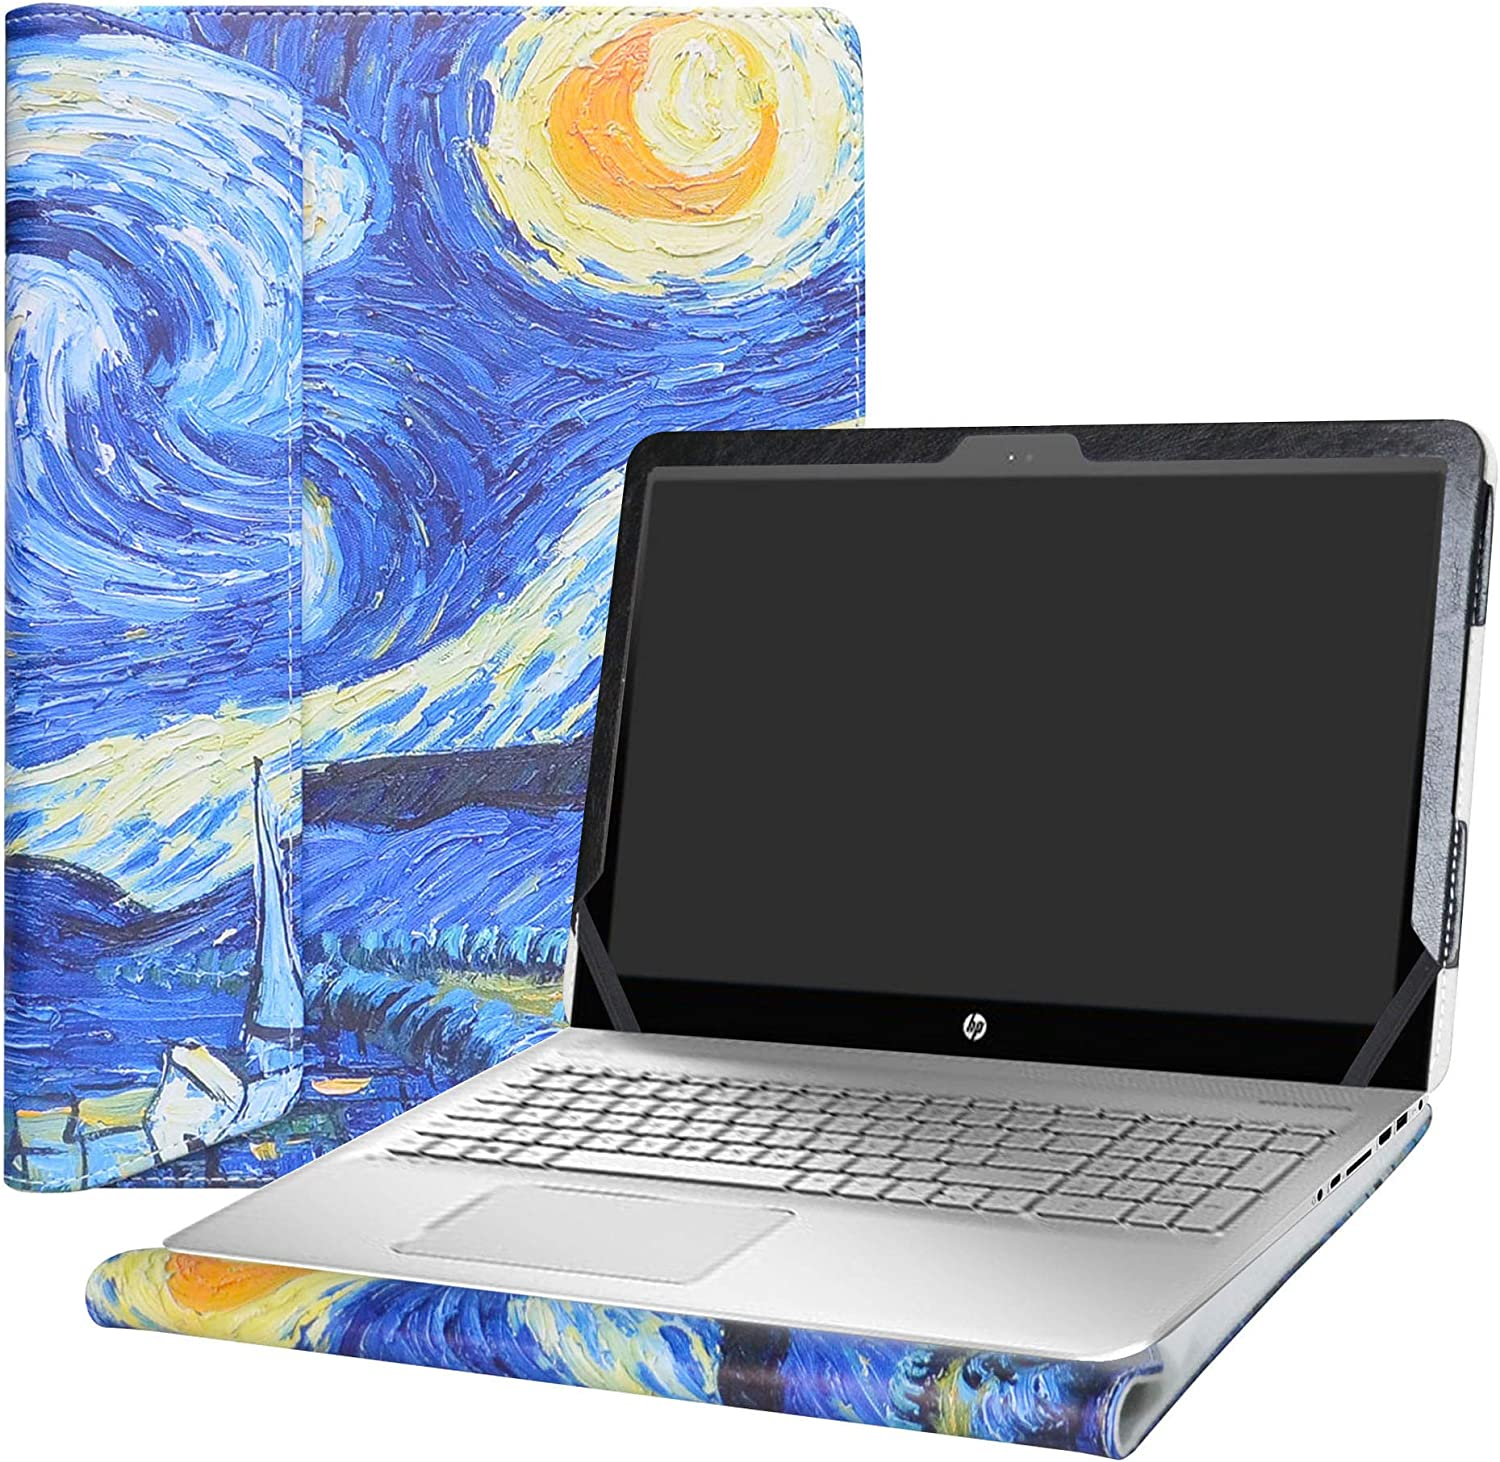 """Alapmk Protective Case Cover for 15.6"""" HP Envy 15 15-asXXX (15-as000 to 15-as999,Such as 15-as020nr 15-as120nr 15-as014wm) Laptop [Warning:Not fit Envy 15 15-aeXXX 15-ahXXX 15-kXXX],Starry Night"""